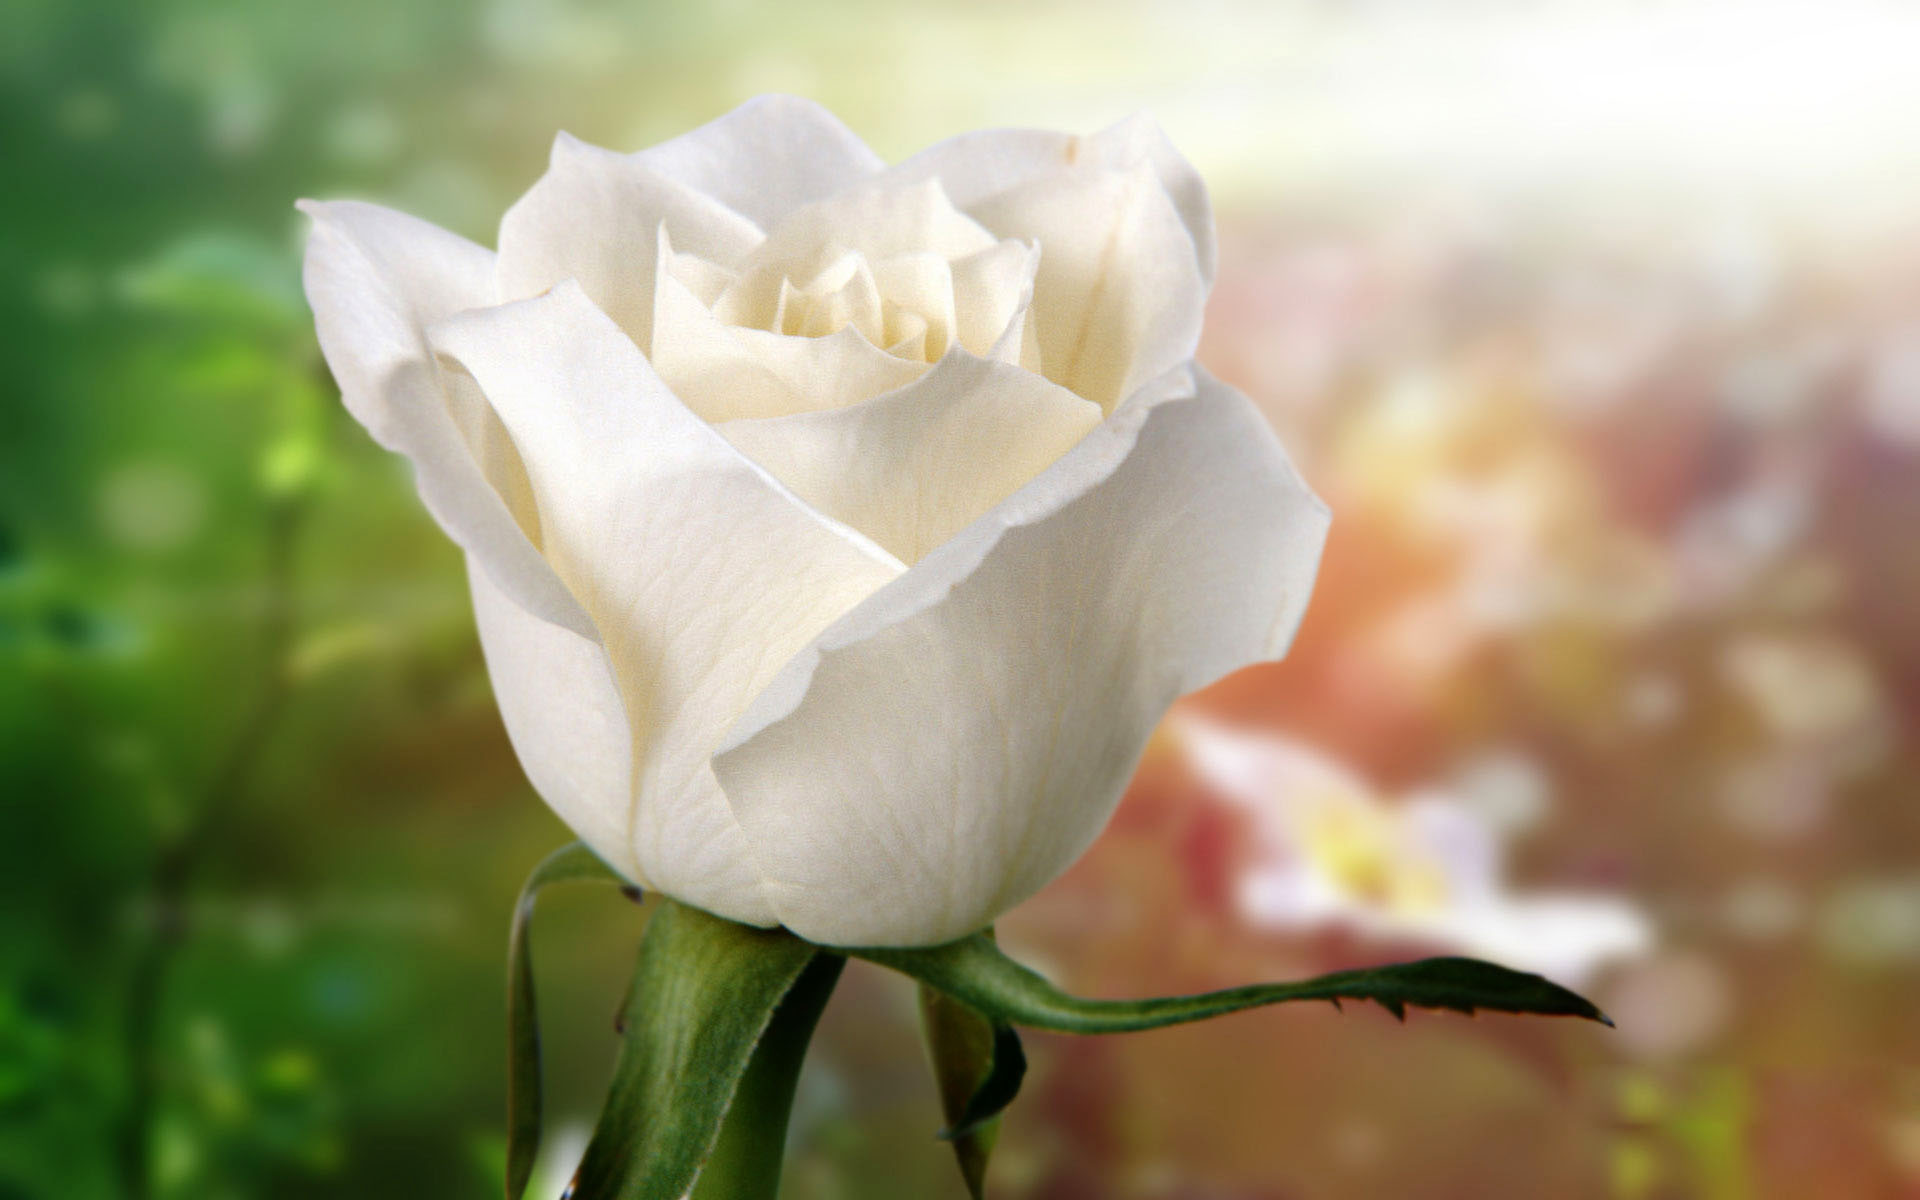 Beautiful rose images and wallpapers 25